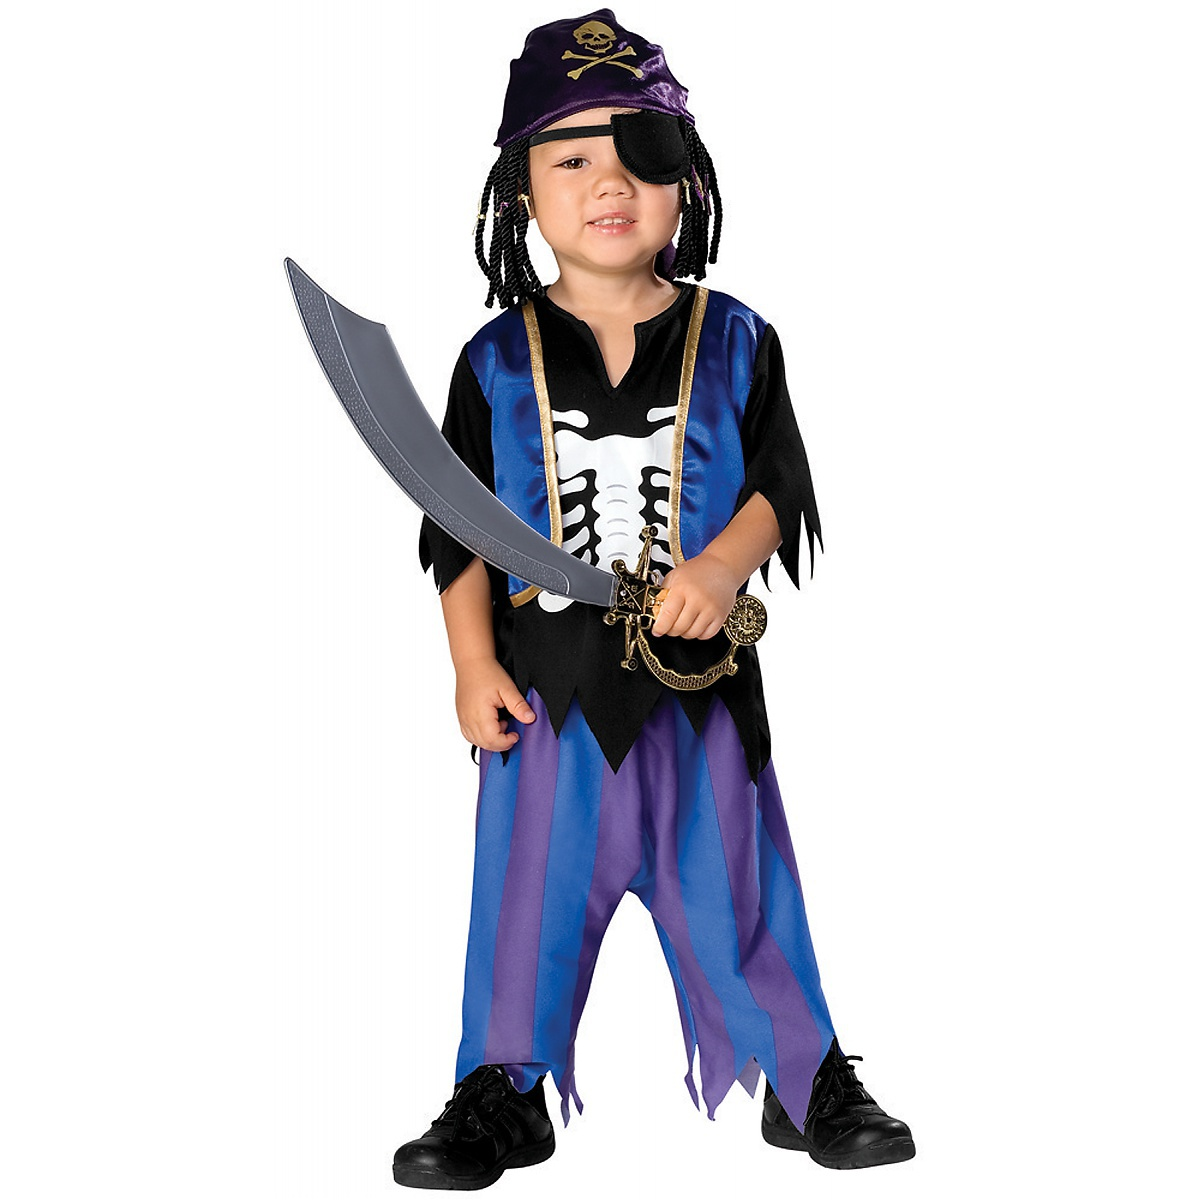 Rubie's Costume Co Skeleton Pirate Toddler Boys Matey Halloween Costume at Sears.com